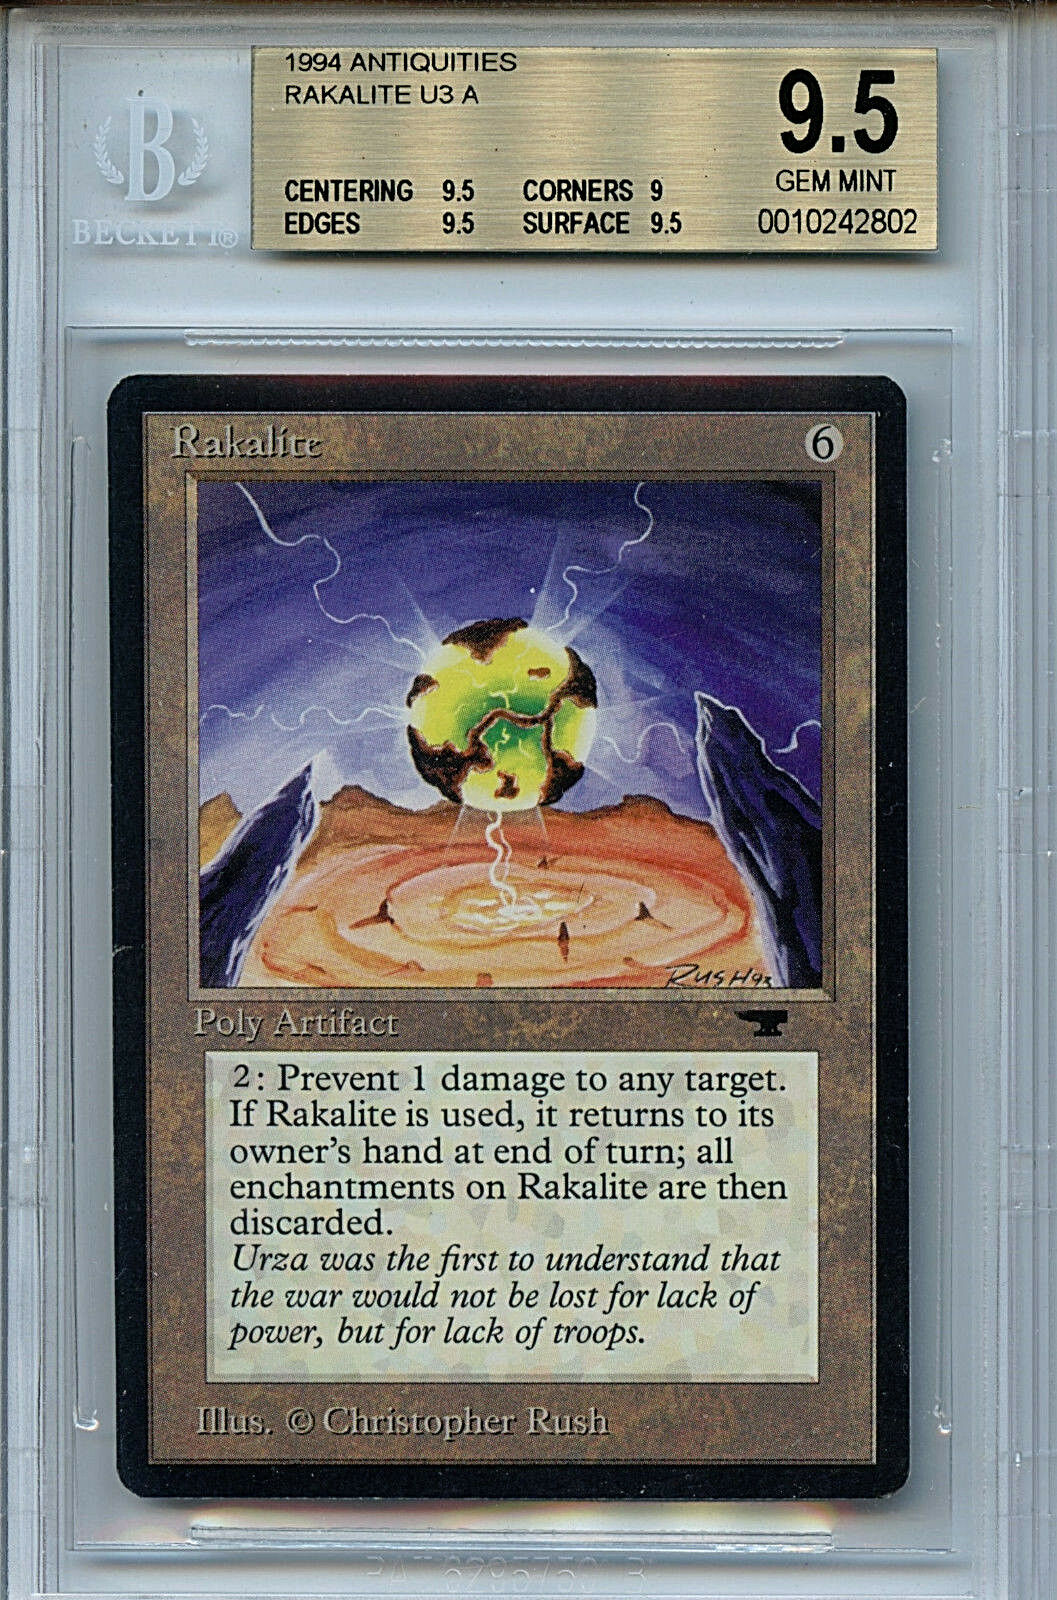 MTG Antiquities Rakalie BGS 9.5 Gem Mint Magic card 2802